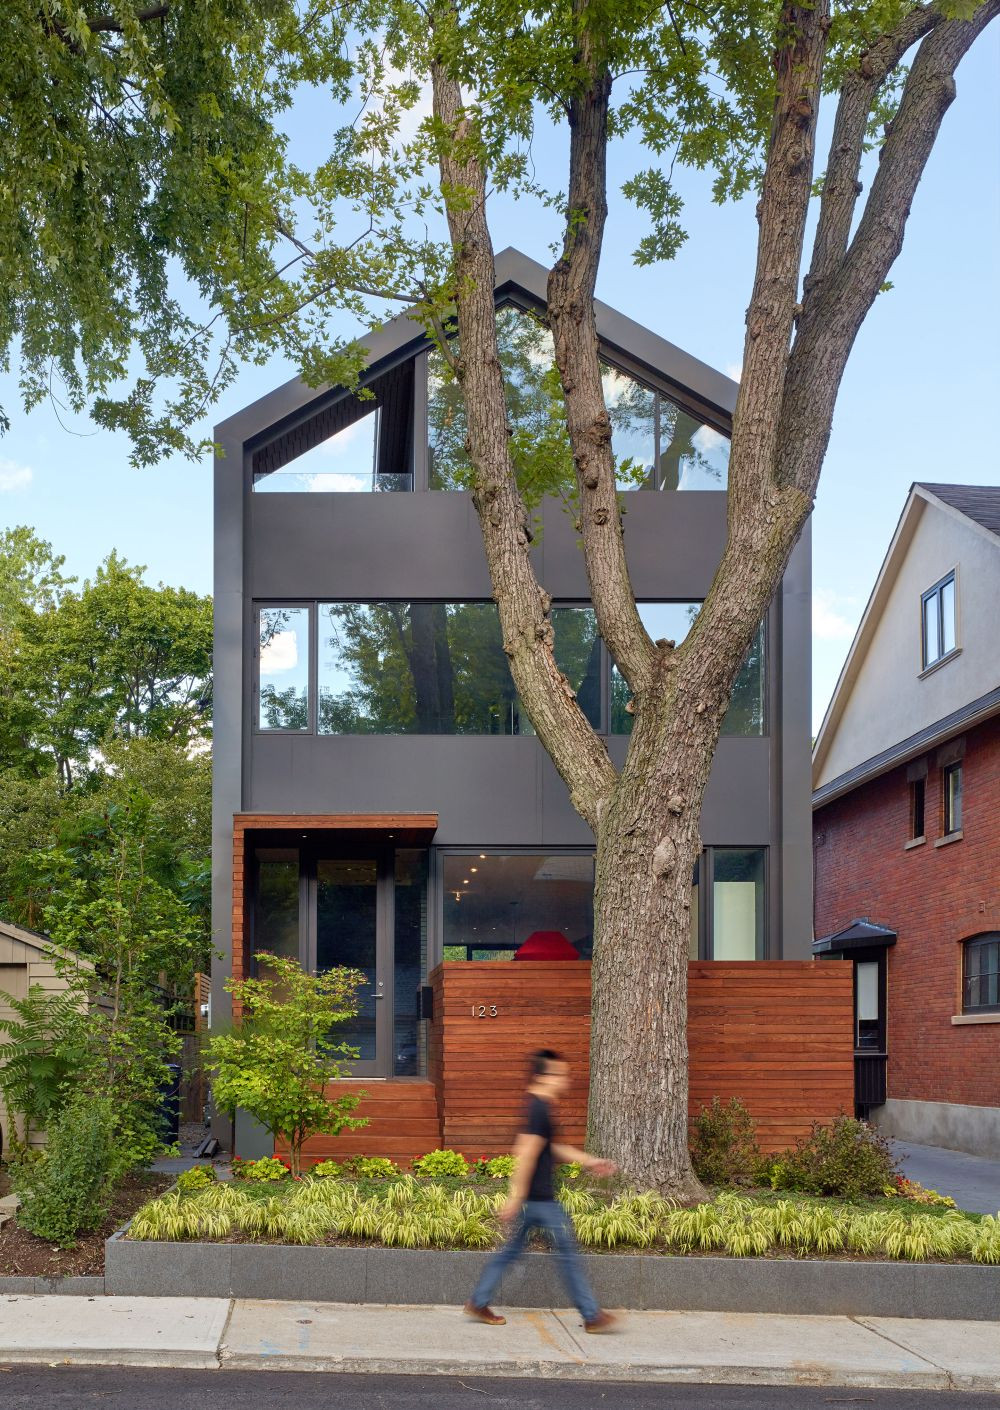 The residence occupies a narrow lot between existing buildings, where an old house used to be